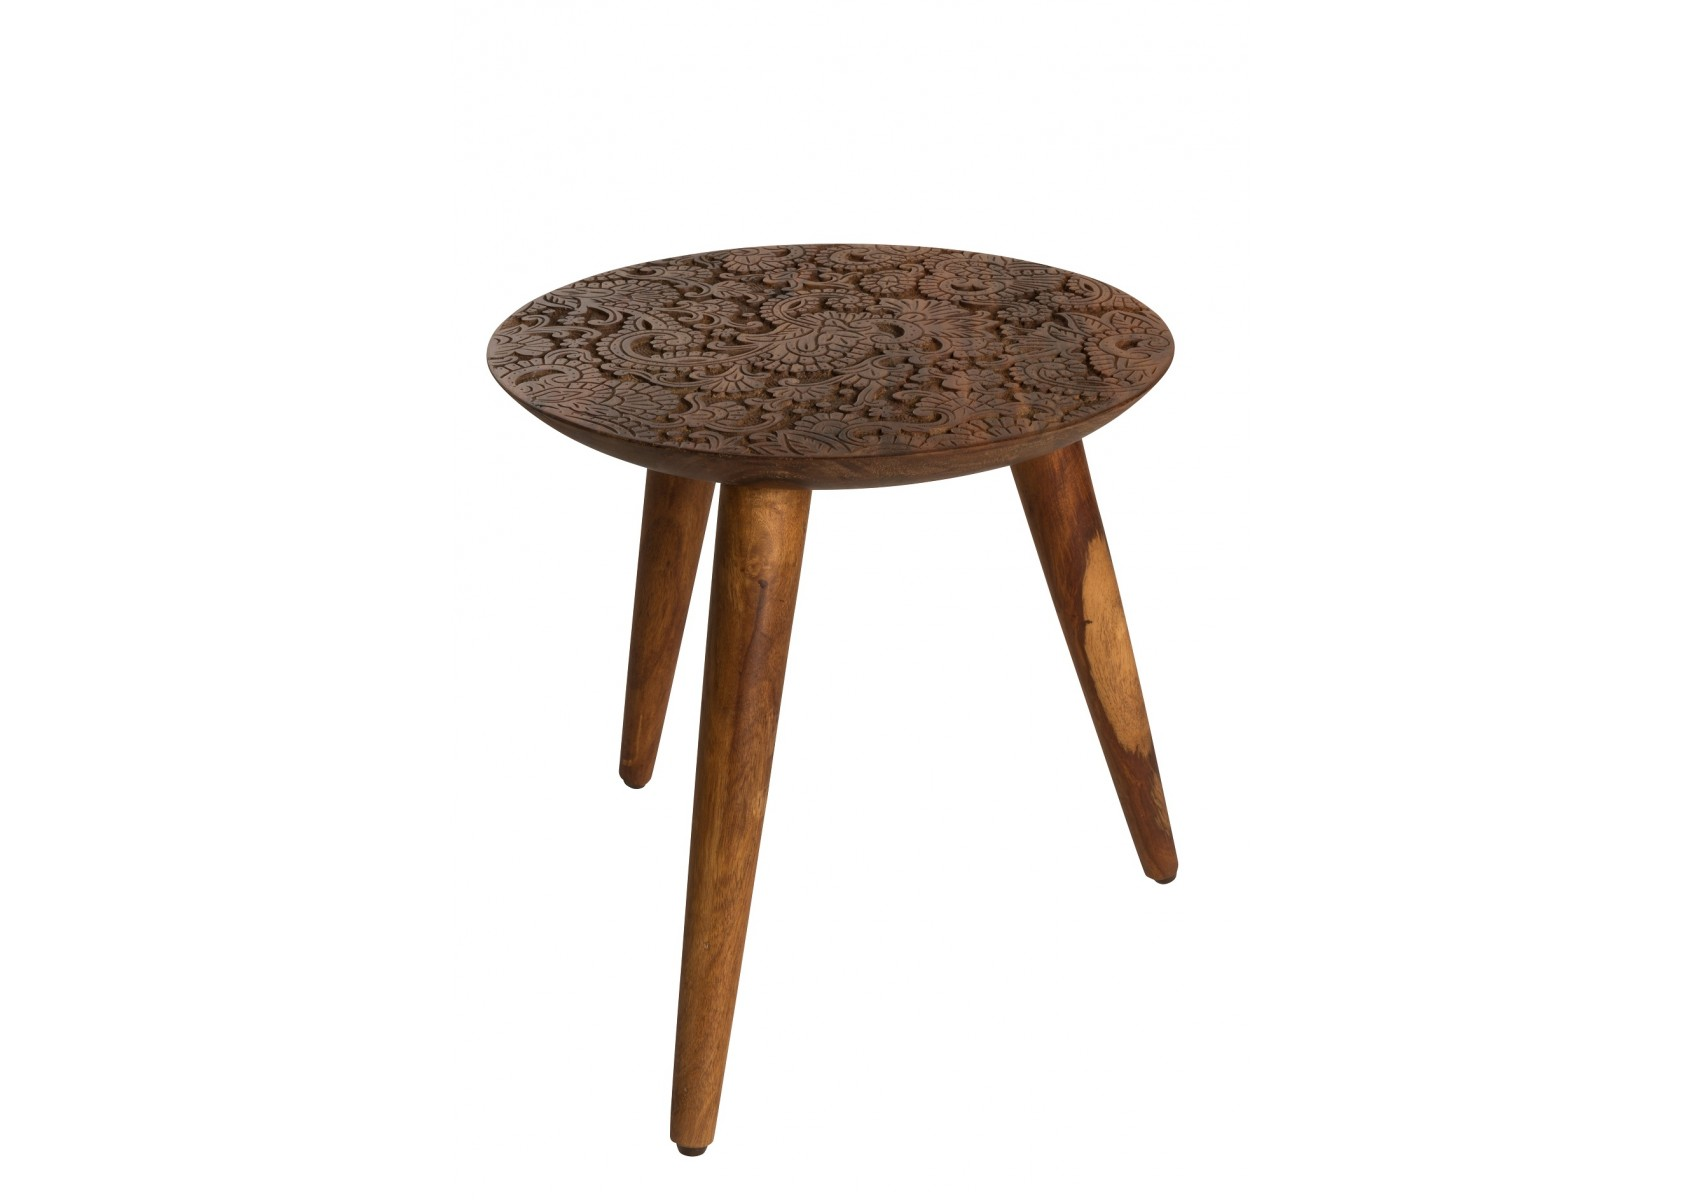 Table d 39 appoint design de la collection by hand de chez - Table d appoint design ...